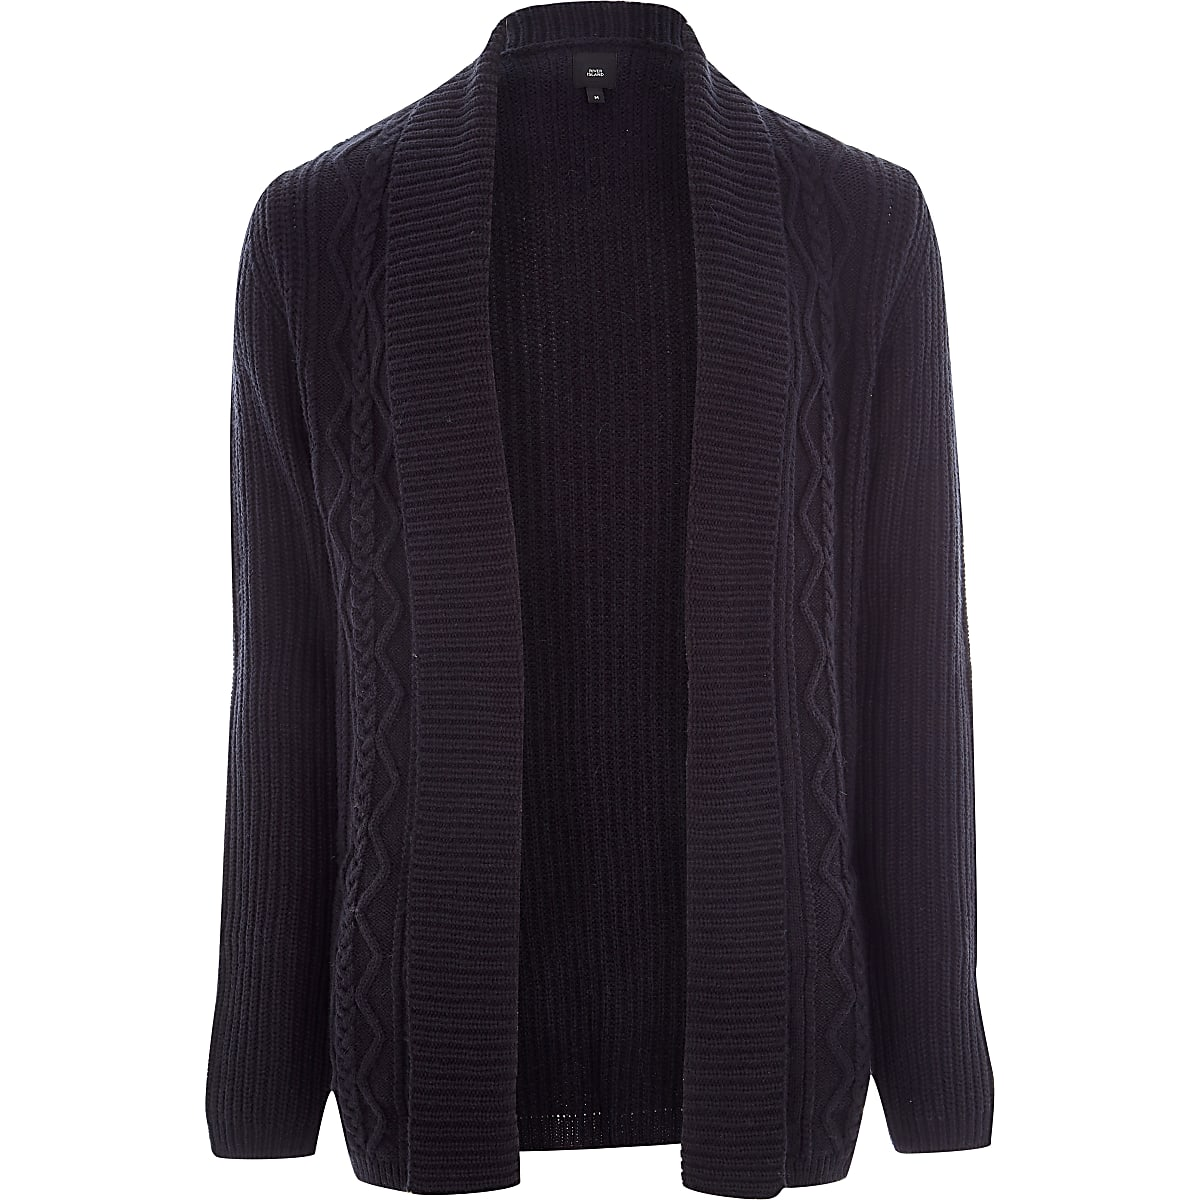 Navy cable knit regular fit cardigan